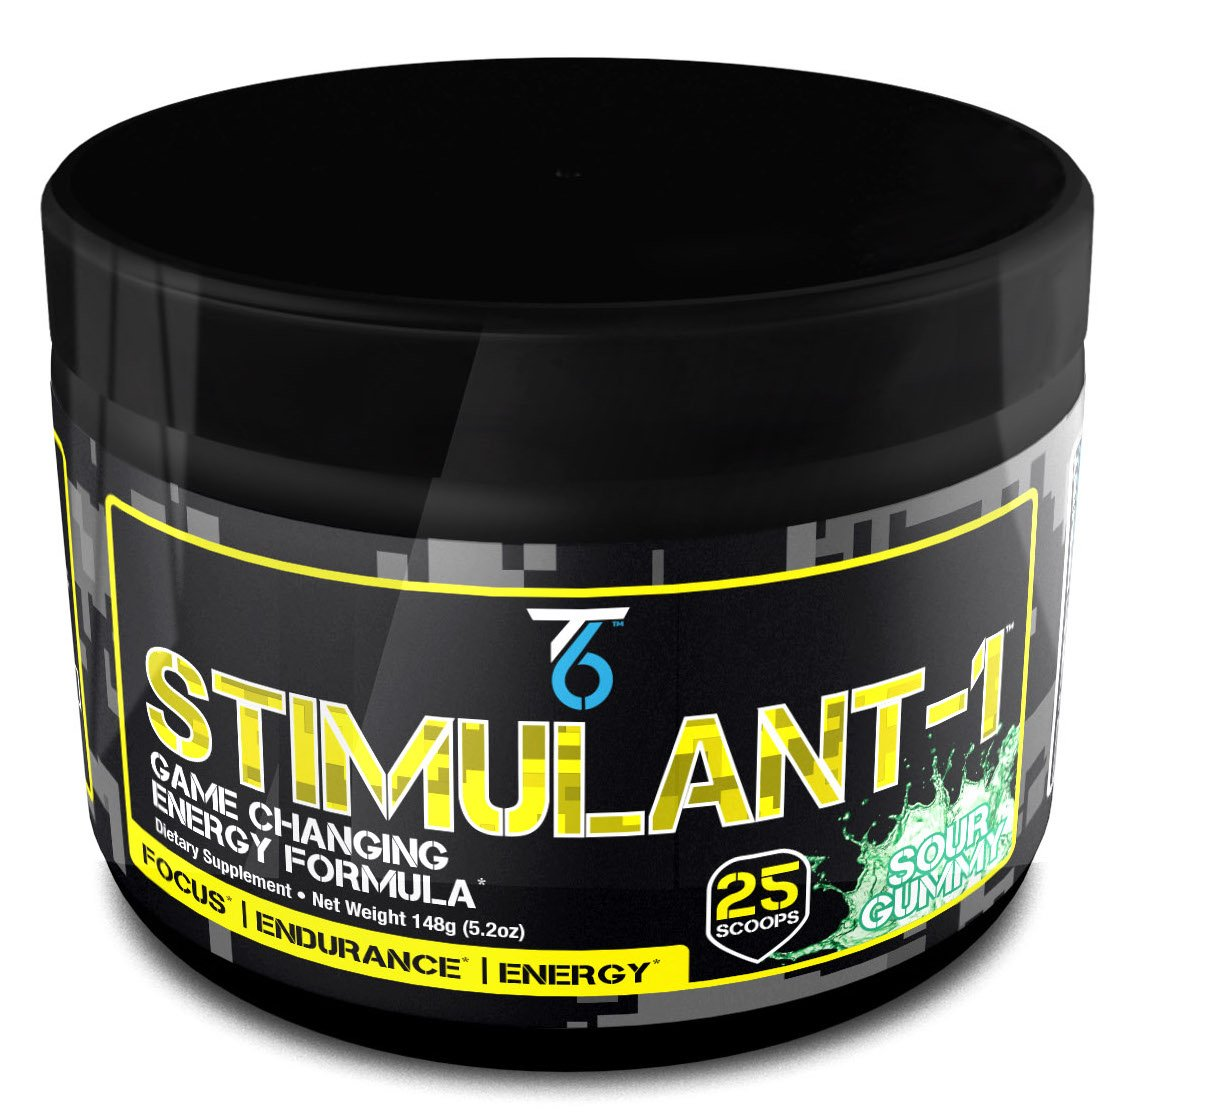 T6 Stimulant-1 Pre Workout Powder - World's Strongest Energy Drink Mix, Nootropic Fat Burner & Focus Supplement for Men & Women w/Taurine & Teacrine, 25sv by Team Six Supplements